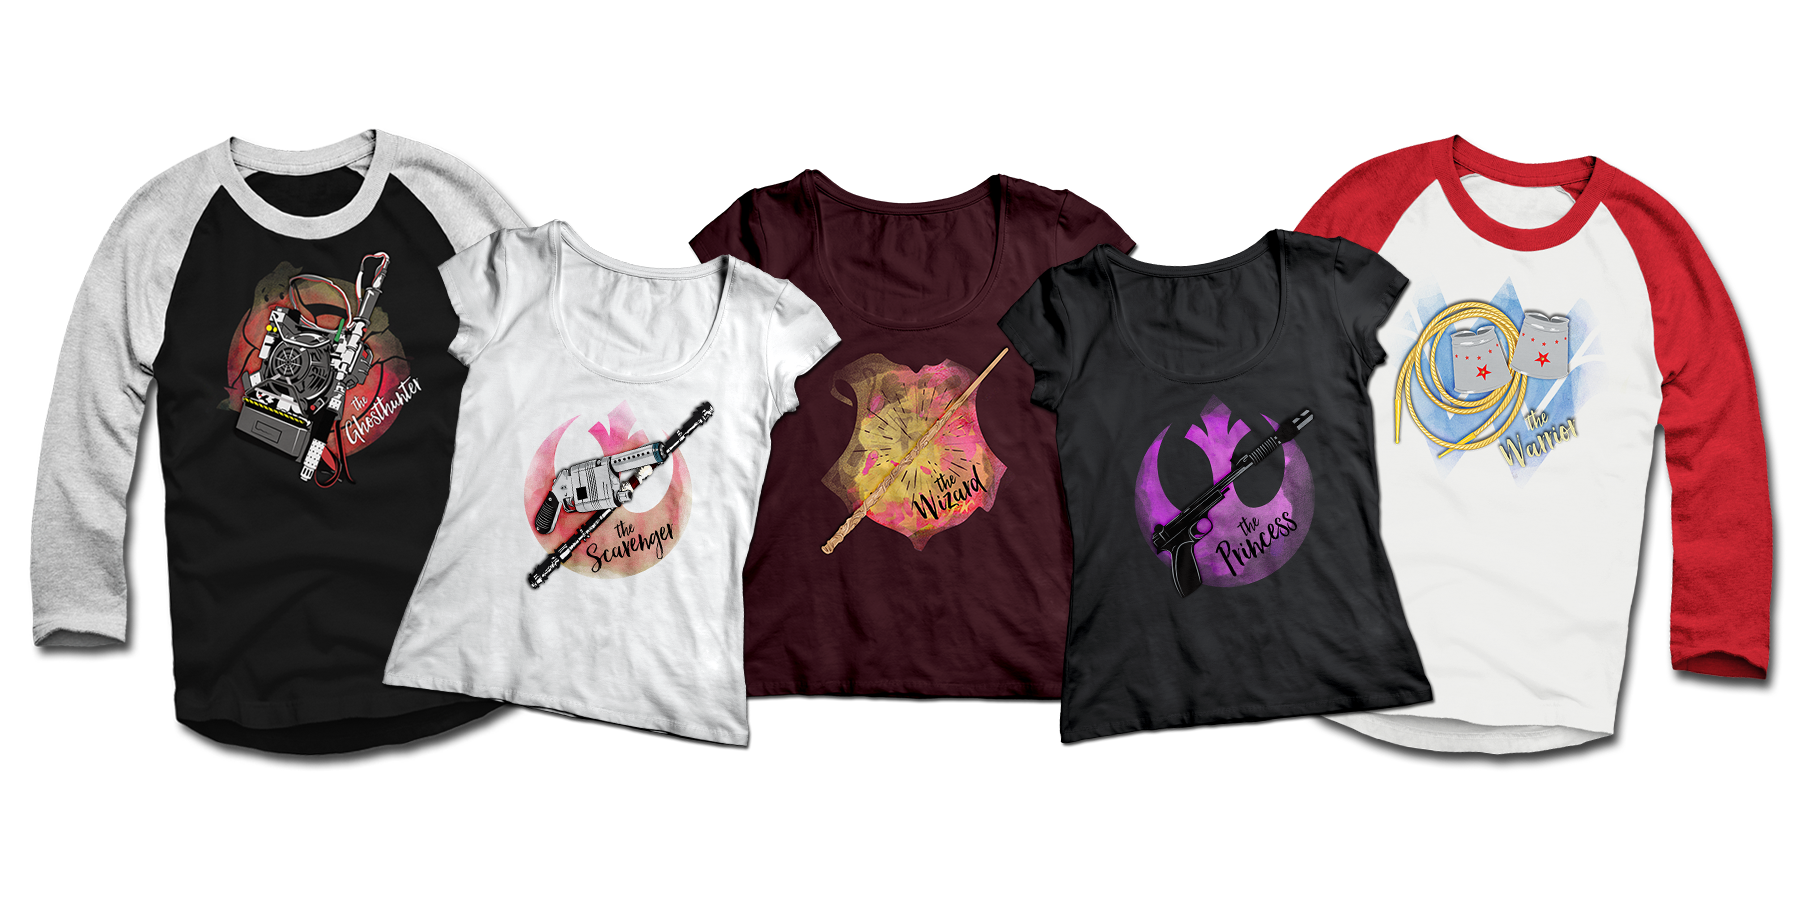 Ghostbusters Harry Potter Wonder Woman Star Wars T-shirts Teepublic